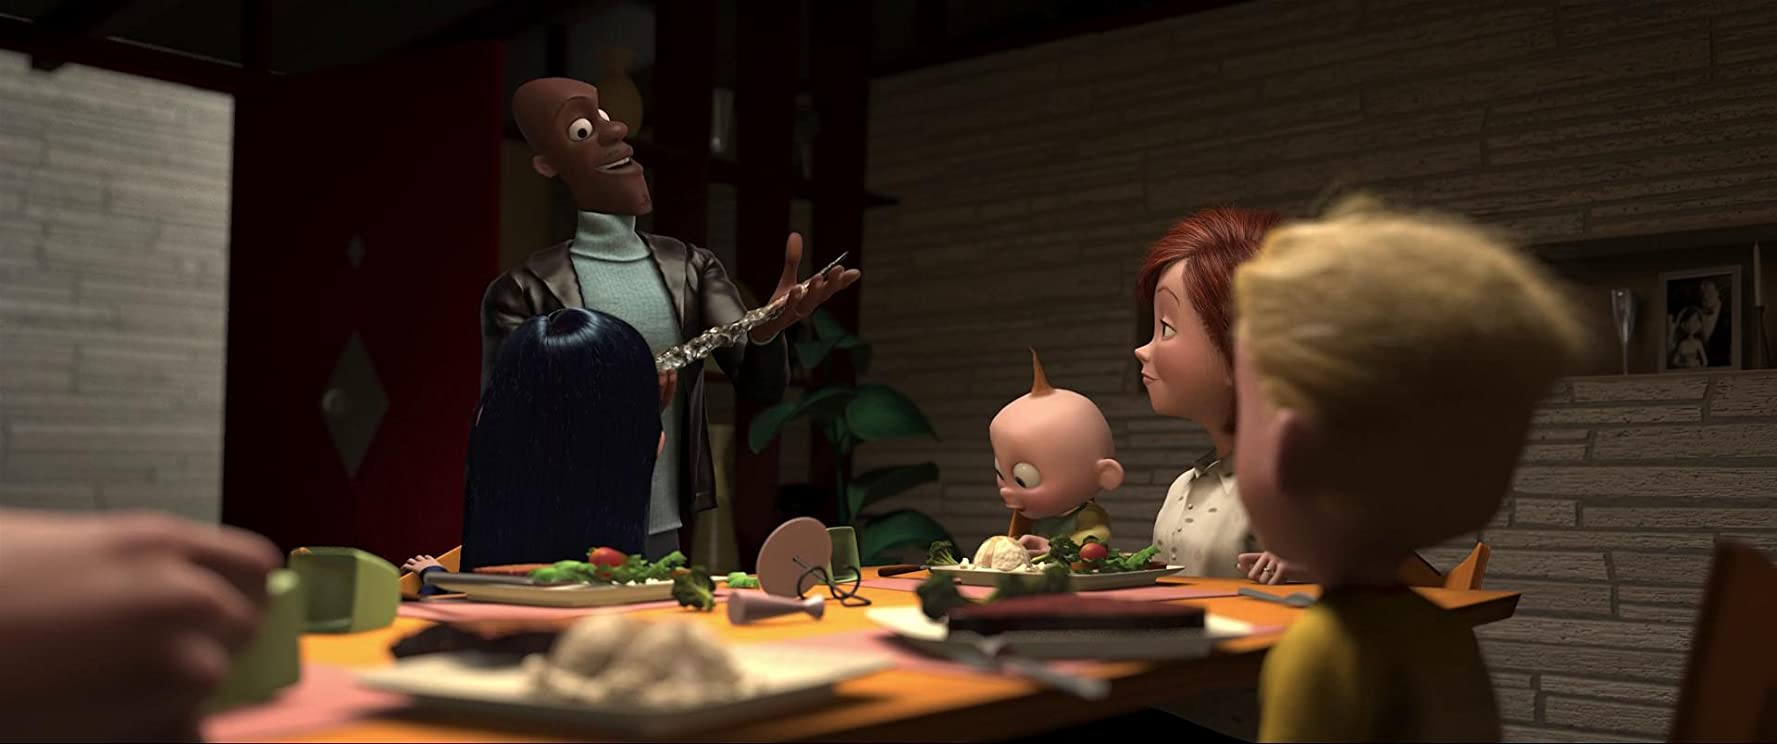 Samuel L. Jackson, Holly Hunter, Sarah Vowell, and Spencer Fox in The Incredibles (2004)